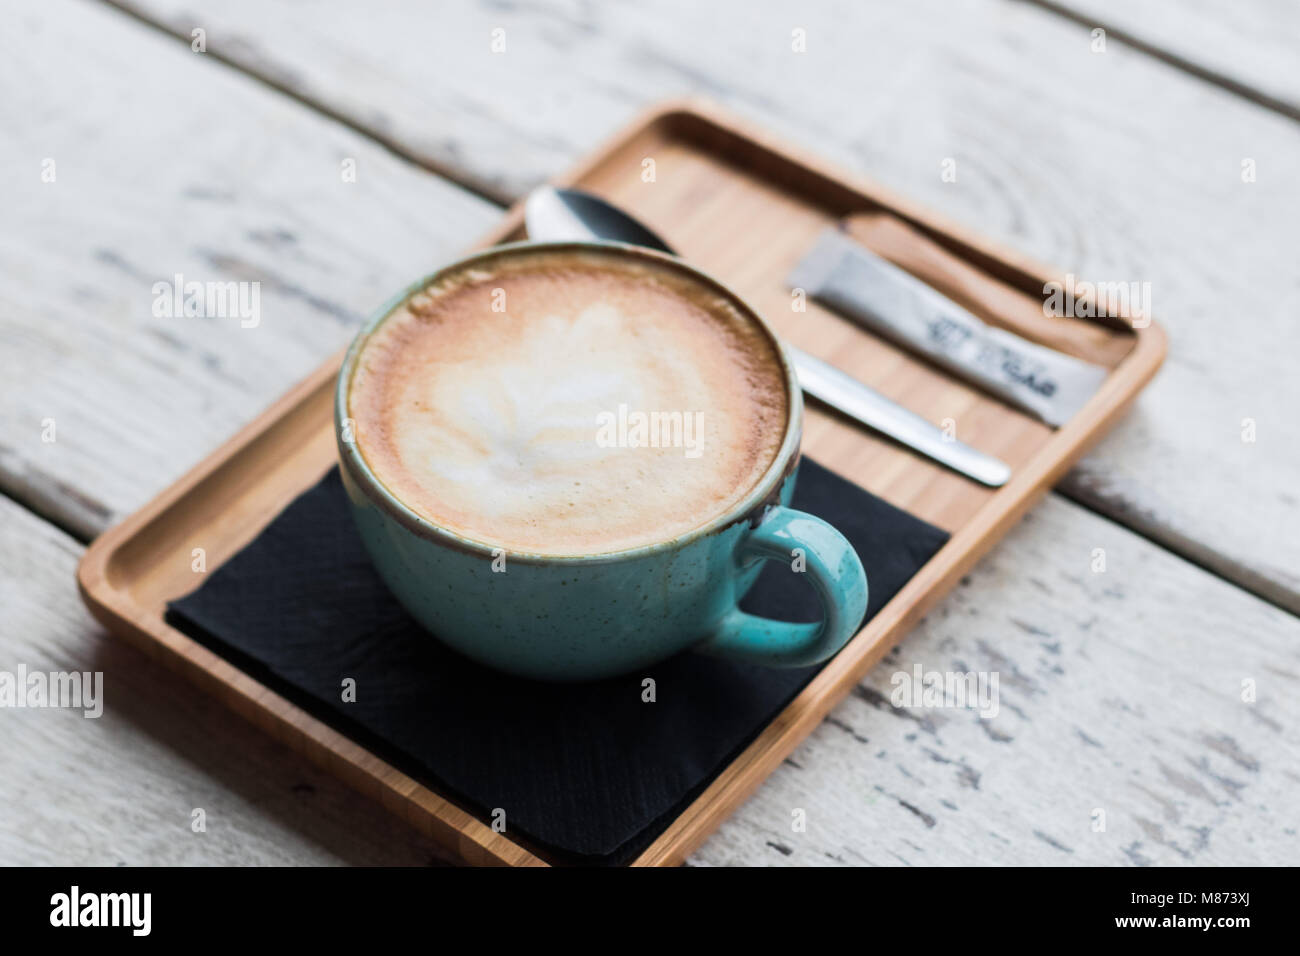 Cup of coffee latte, cappuccino trendy cafe - Stock Image